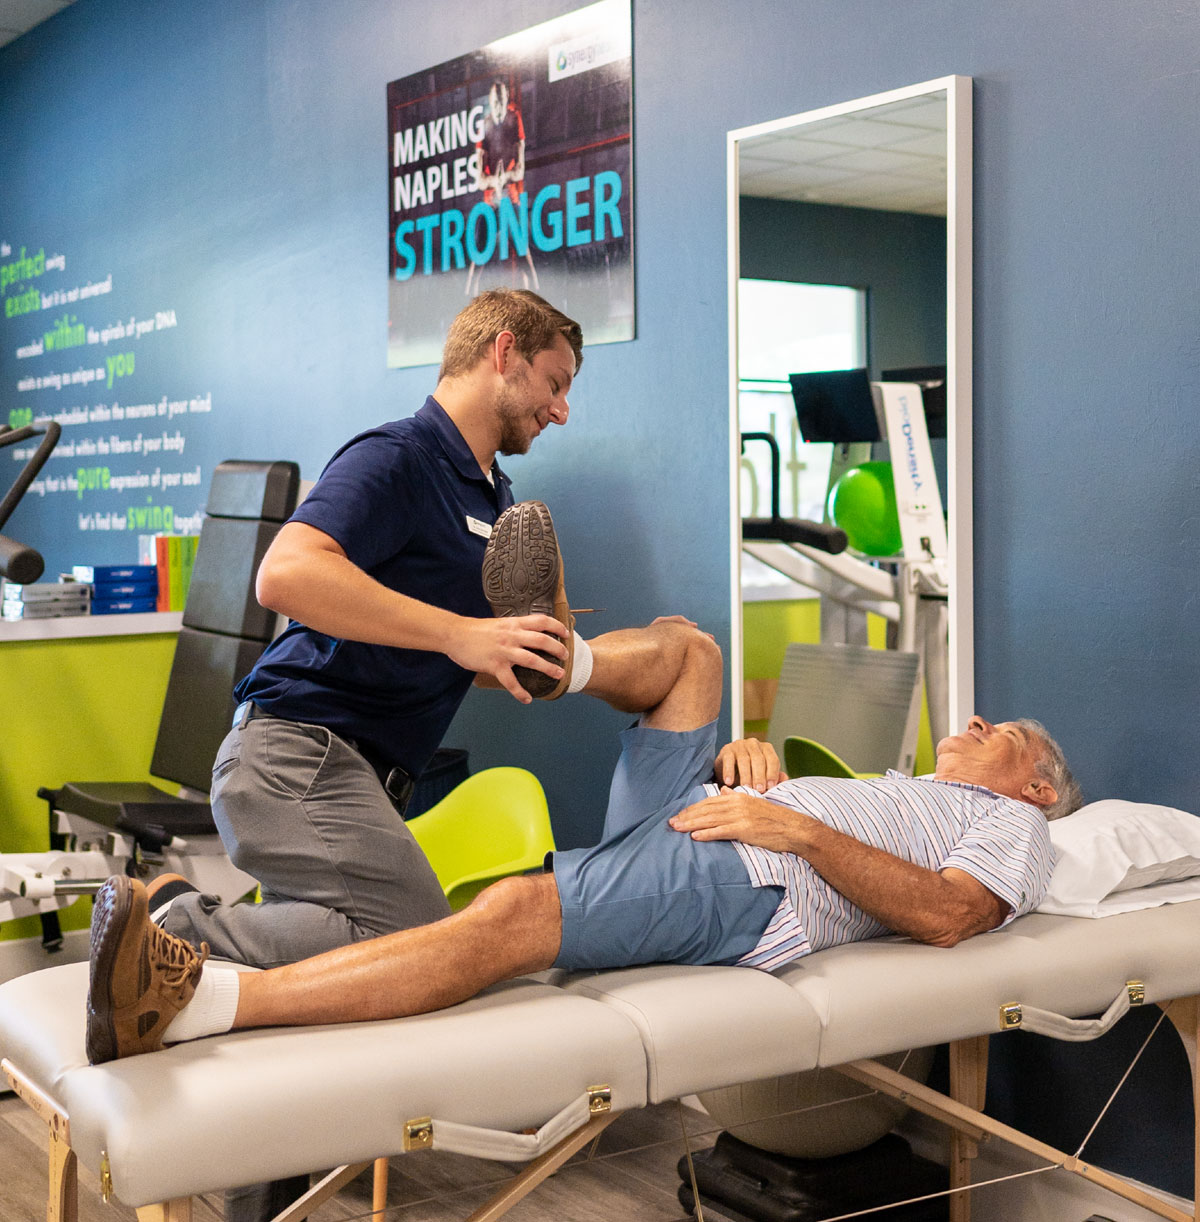 physical therapy services in naples fl